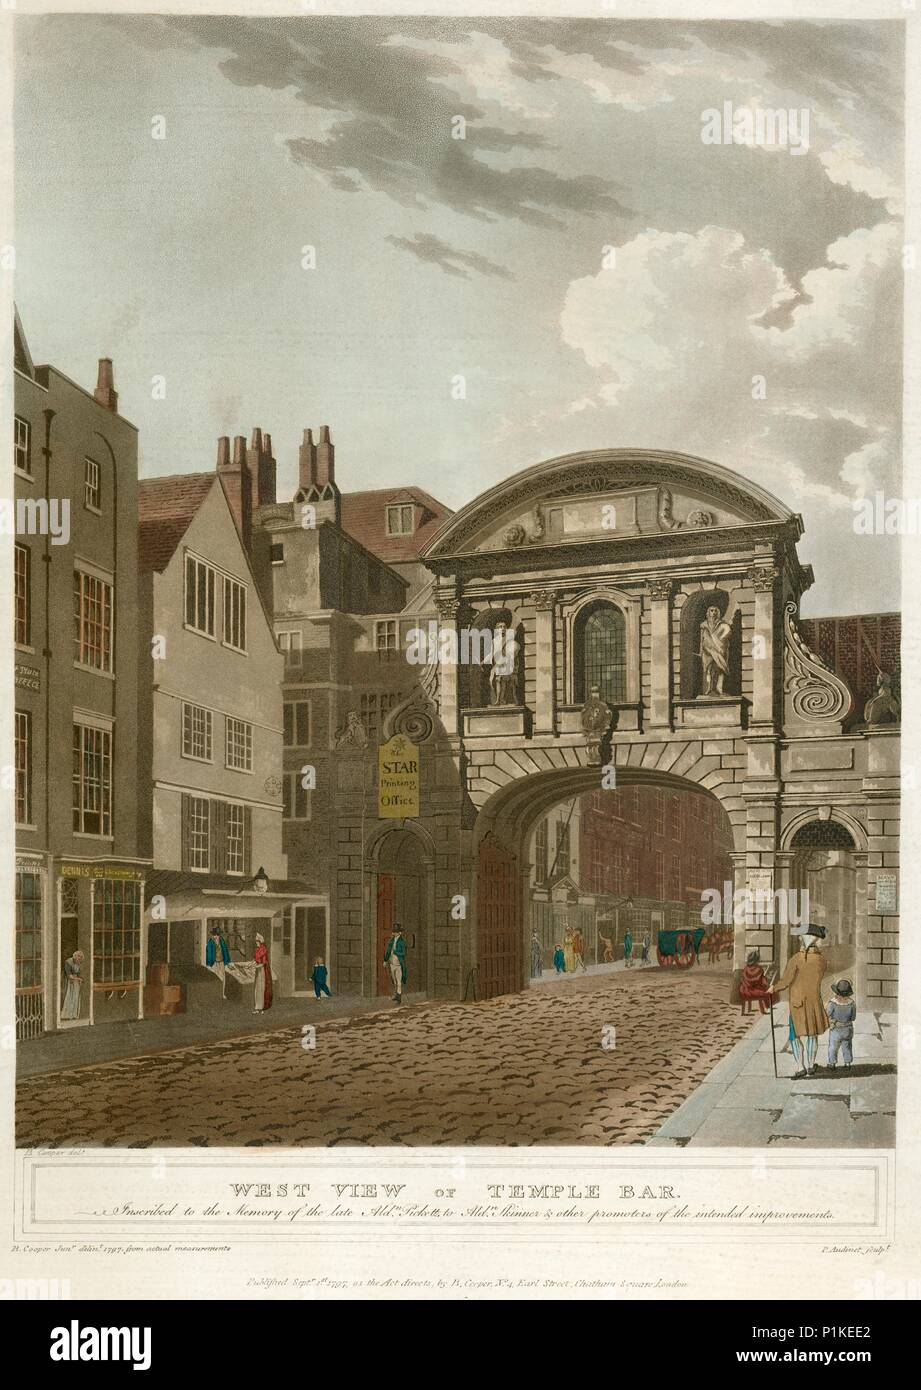 Temple Bar, London, 1797. 'West View of Temple Bar'. This incarnation of Temple Bar (the gate between the Cities of London and Westminster) was constr - Stock Image